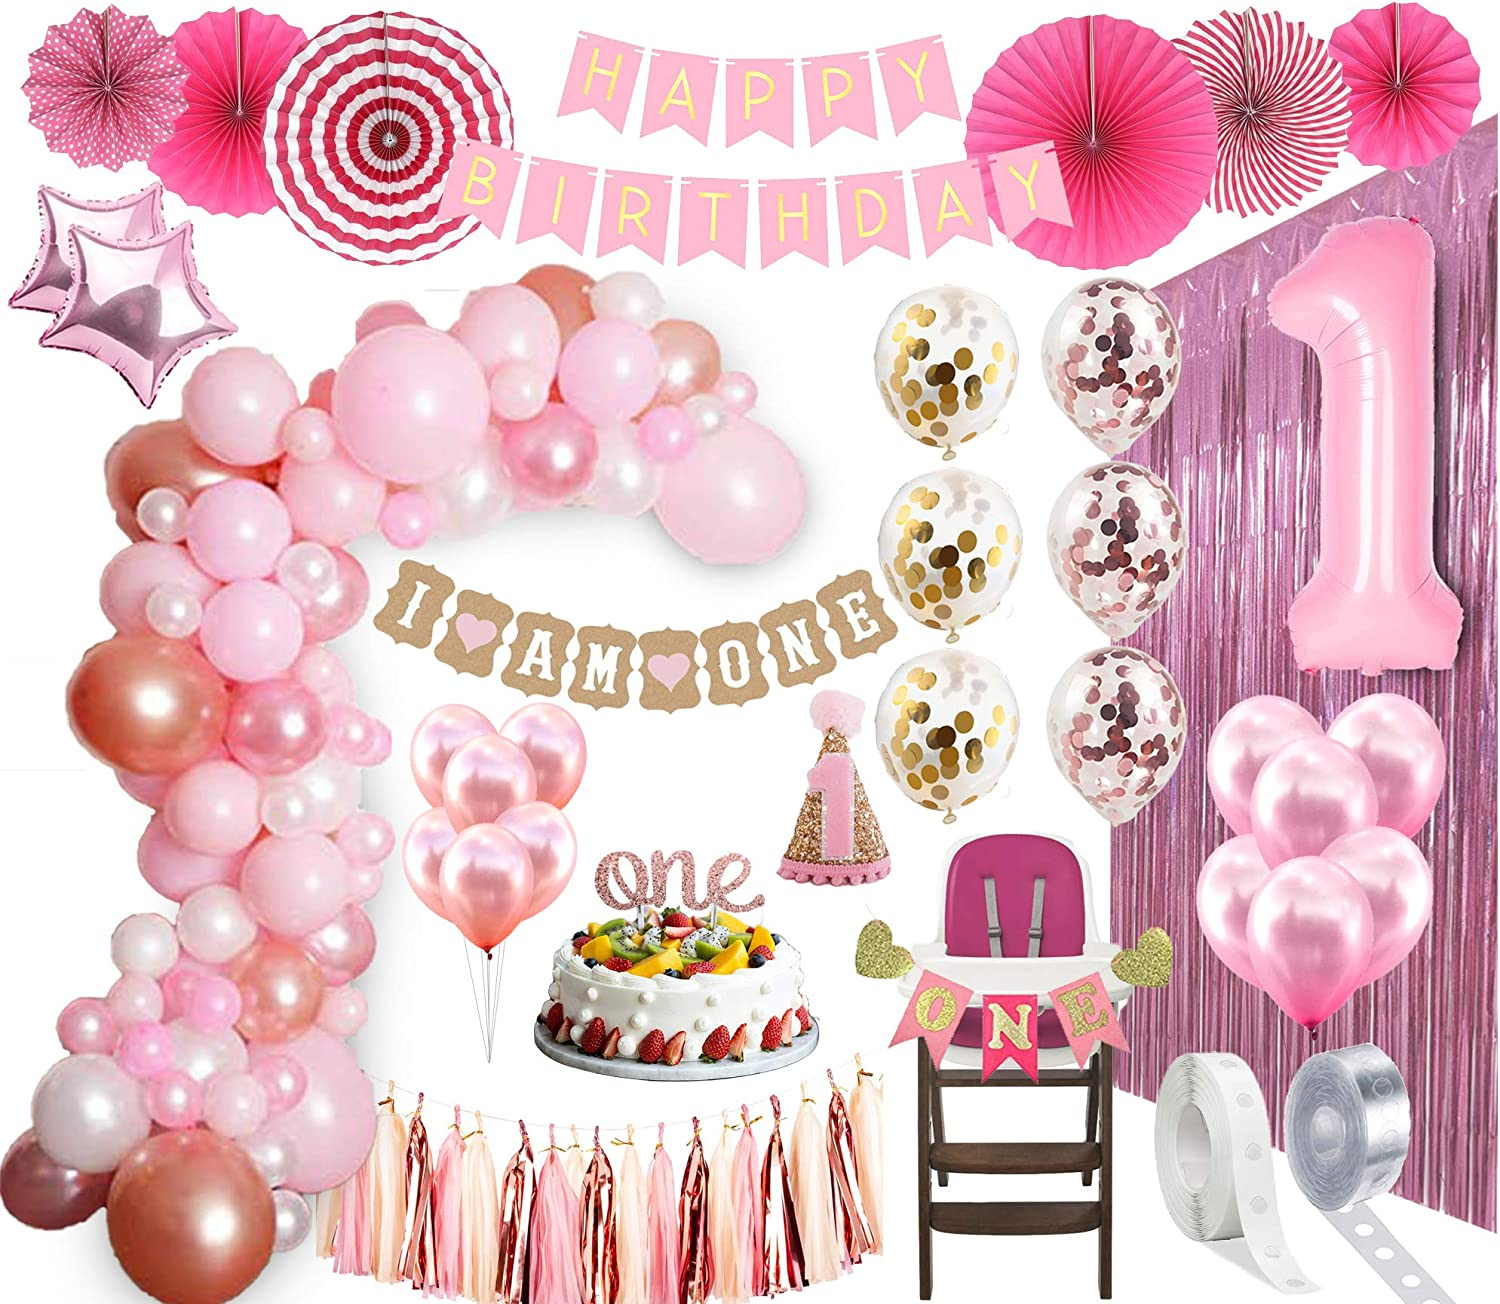 Amazon Com 1st Birthday Girl Decorations Balloon Arch Kit 1st Birthday Party Supplies Rose Gold Party Decorations Rose Gold Confetti Balloons Happy First Bday Princess Decorations First Birthday